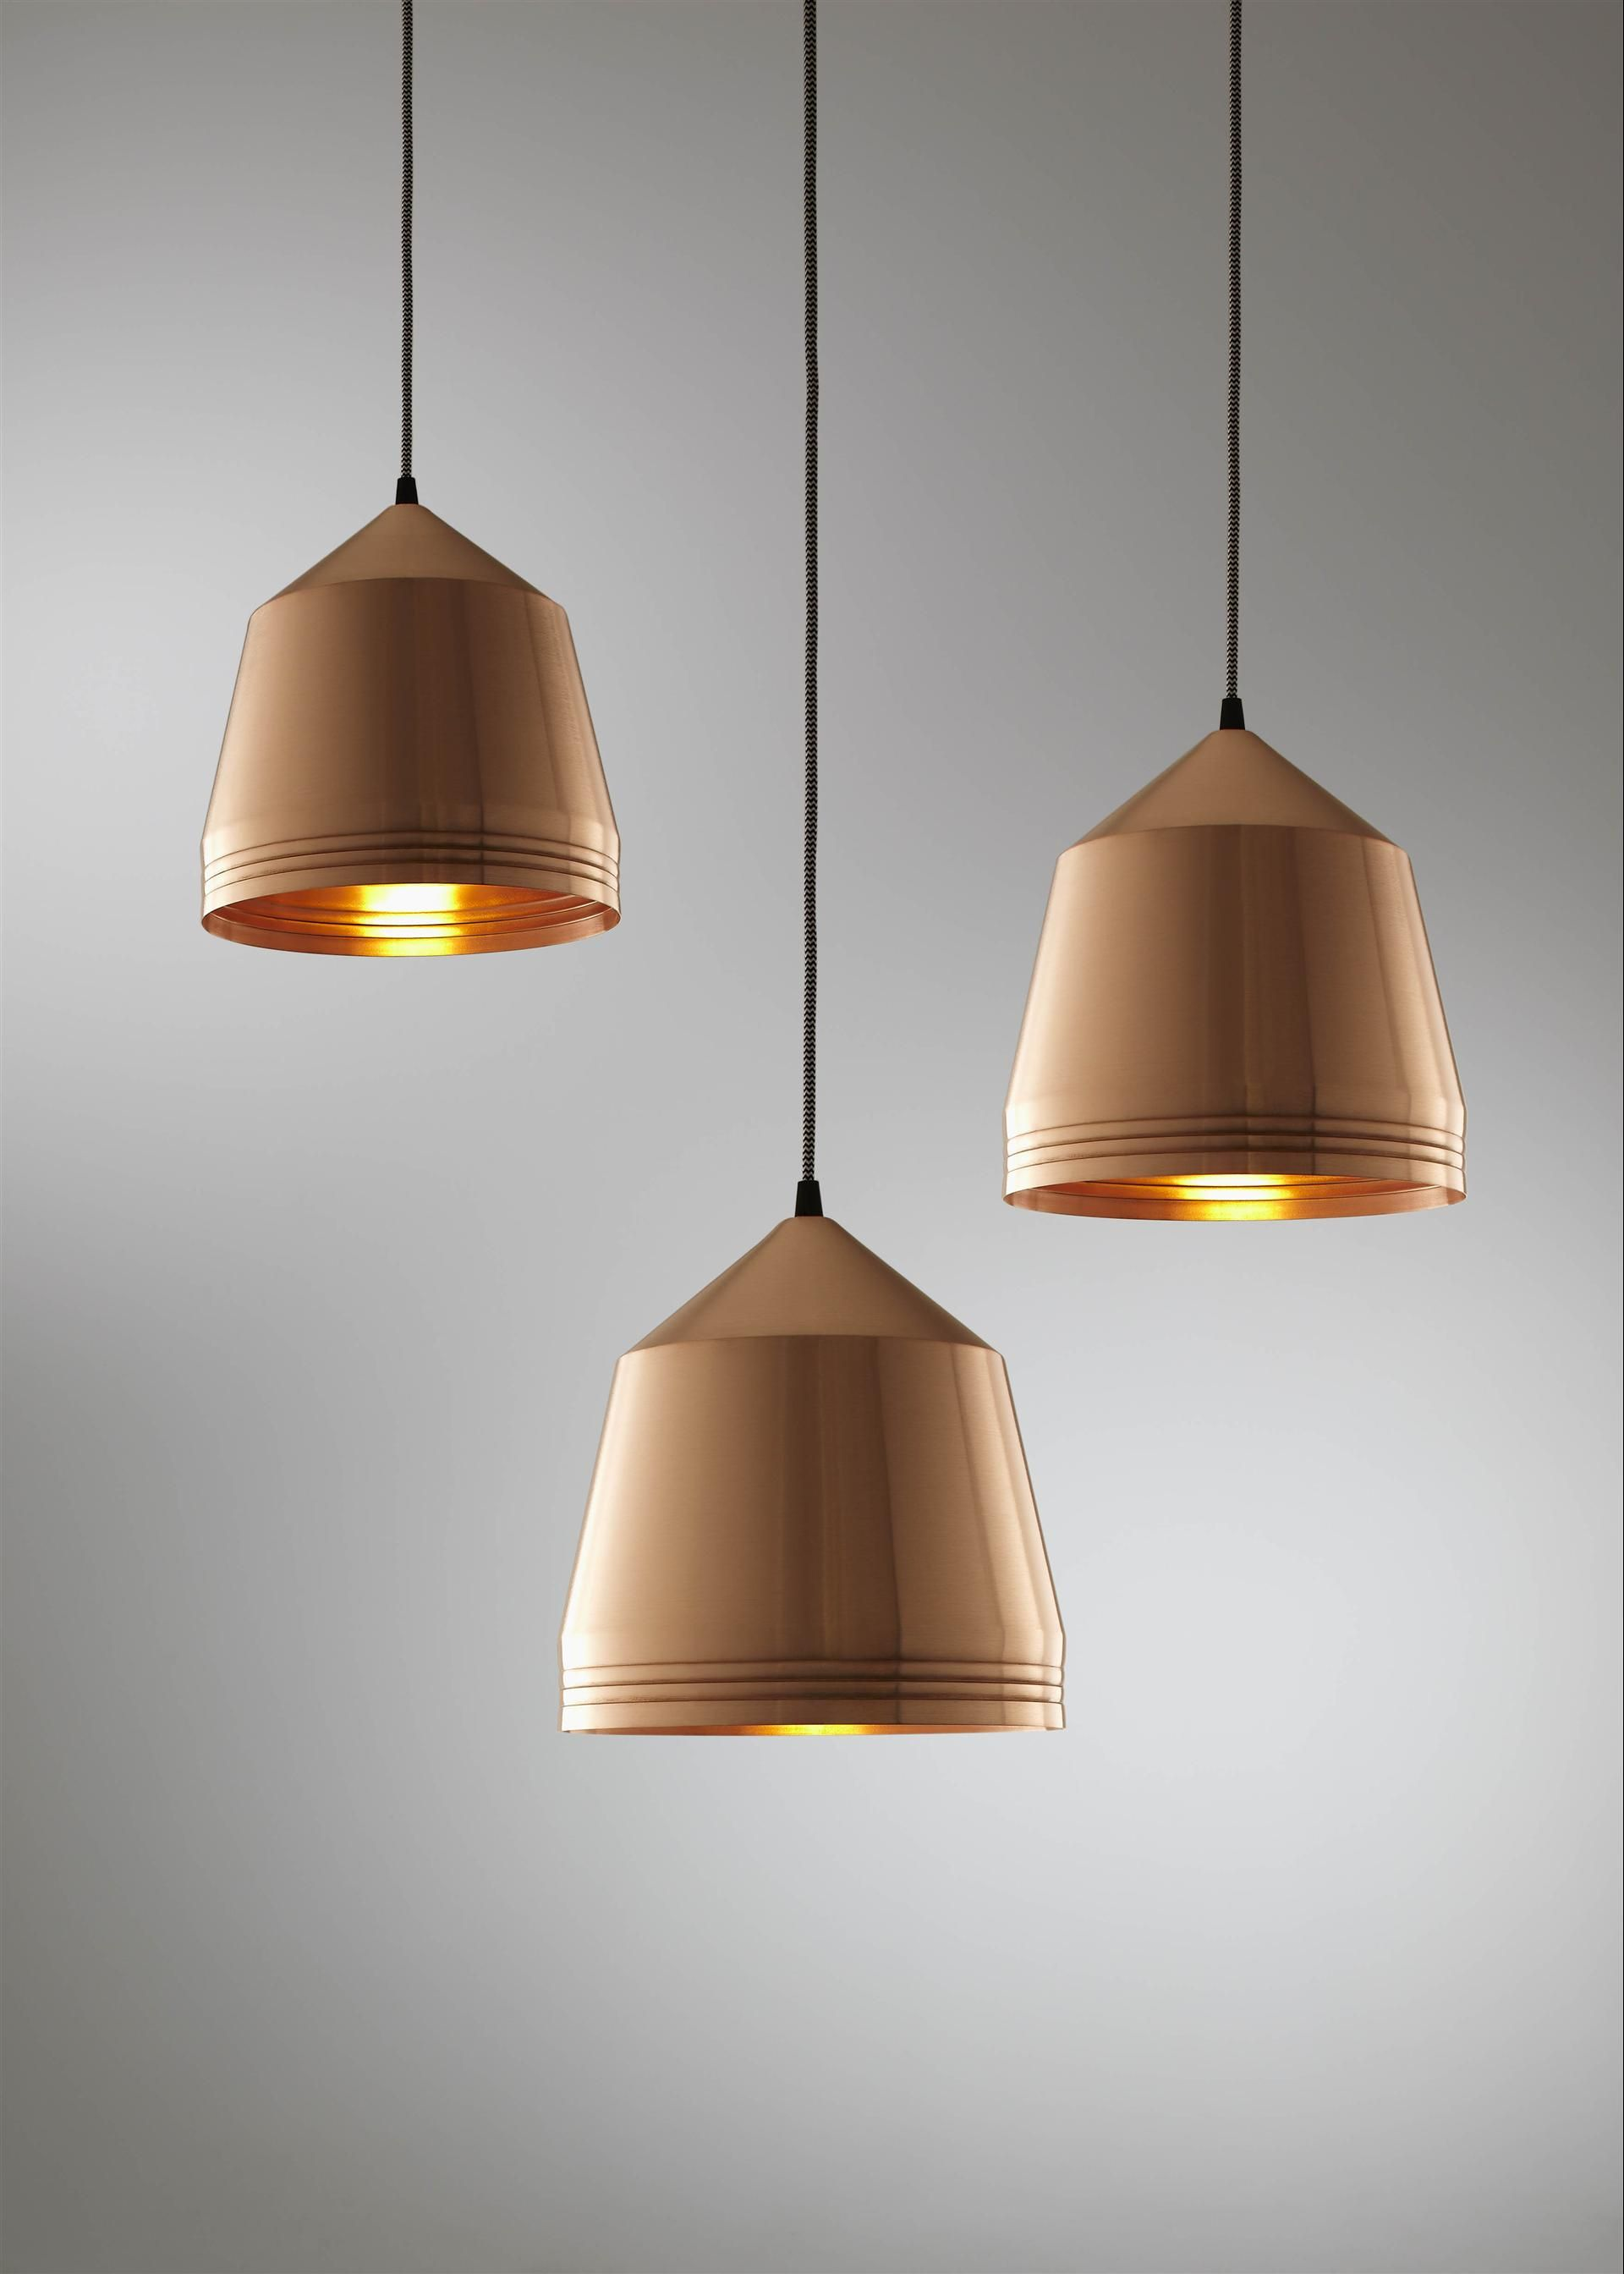 Mr Cooper Tongue And Groove Copper Pendant Lights Copper Pendant Lights Kitchen Copper Pendant Lamp